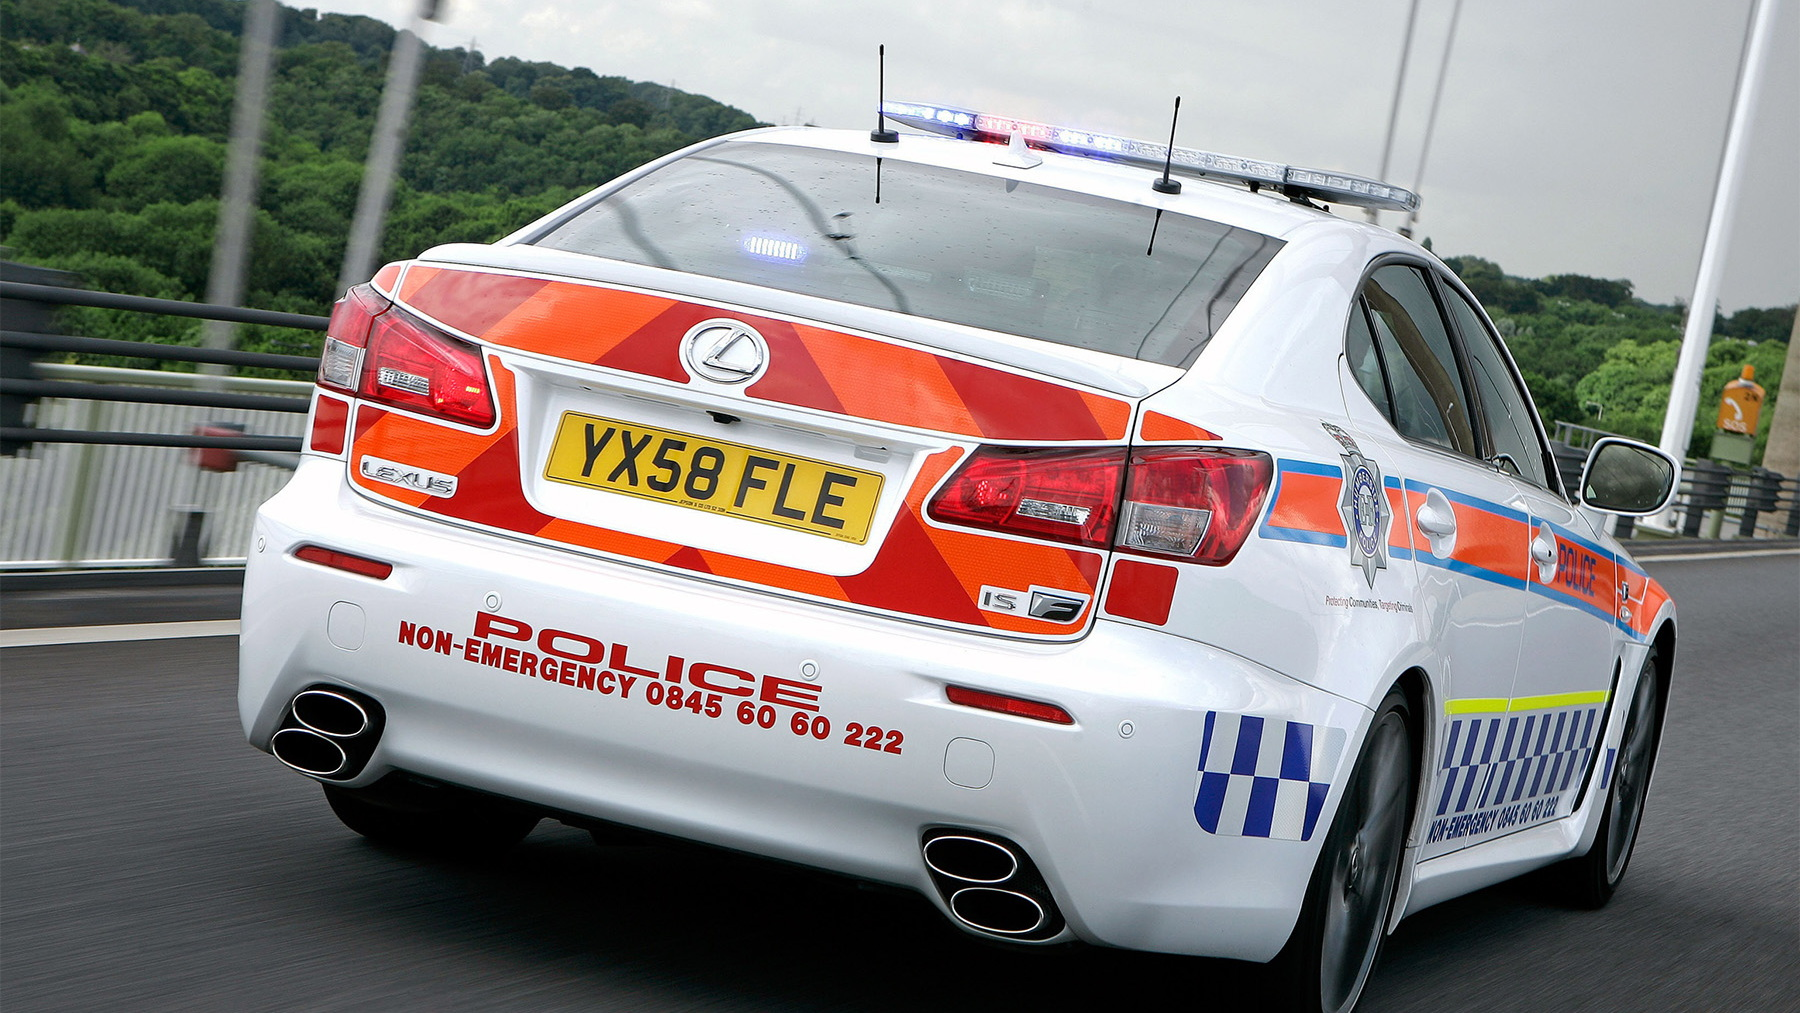 2009 lexus is f police car 005